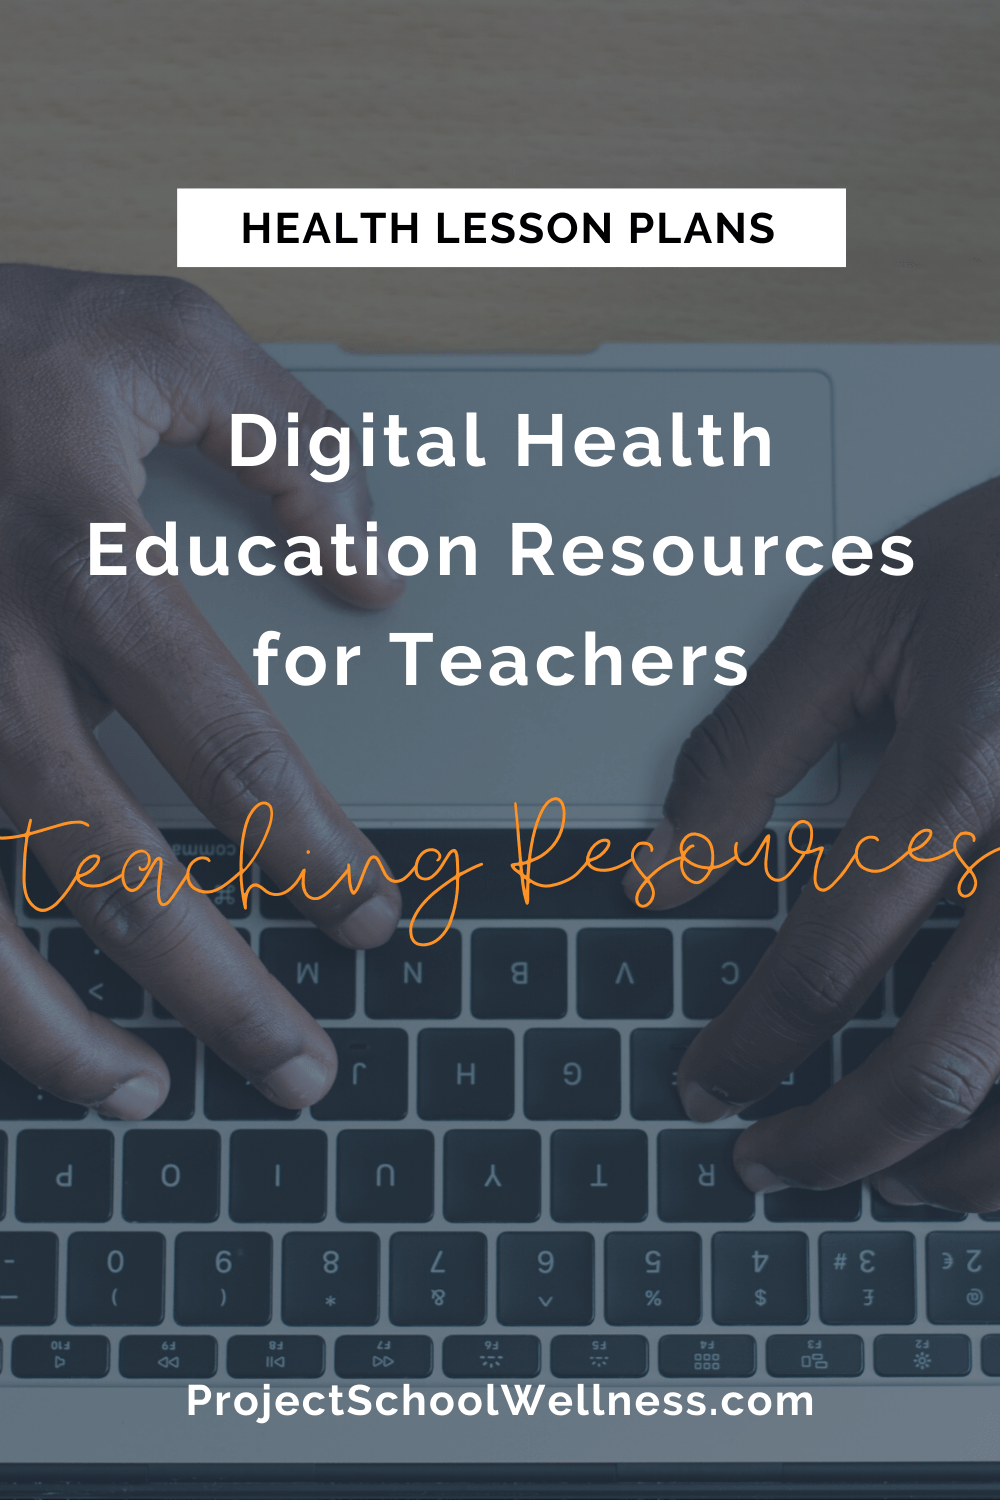 Digital Health Education Resources for Teachers - A look at how Project School Wellness Health Lesson Plans are Digital Friend and ready for online education and distance learning